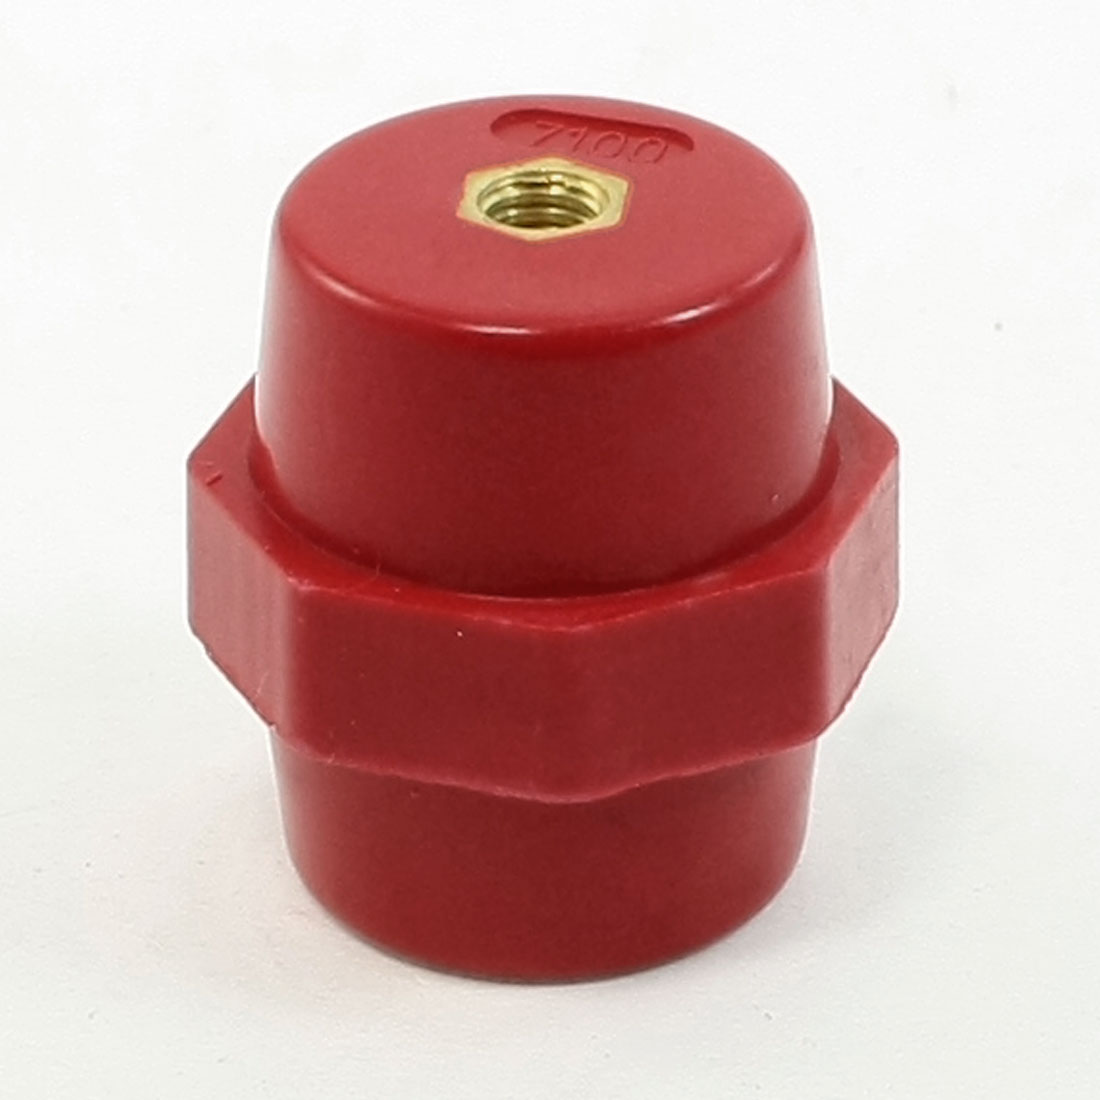 SM7100 10KV Withstand Voltage 6mm Bore 35mm High Busbar Insulator Support